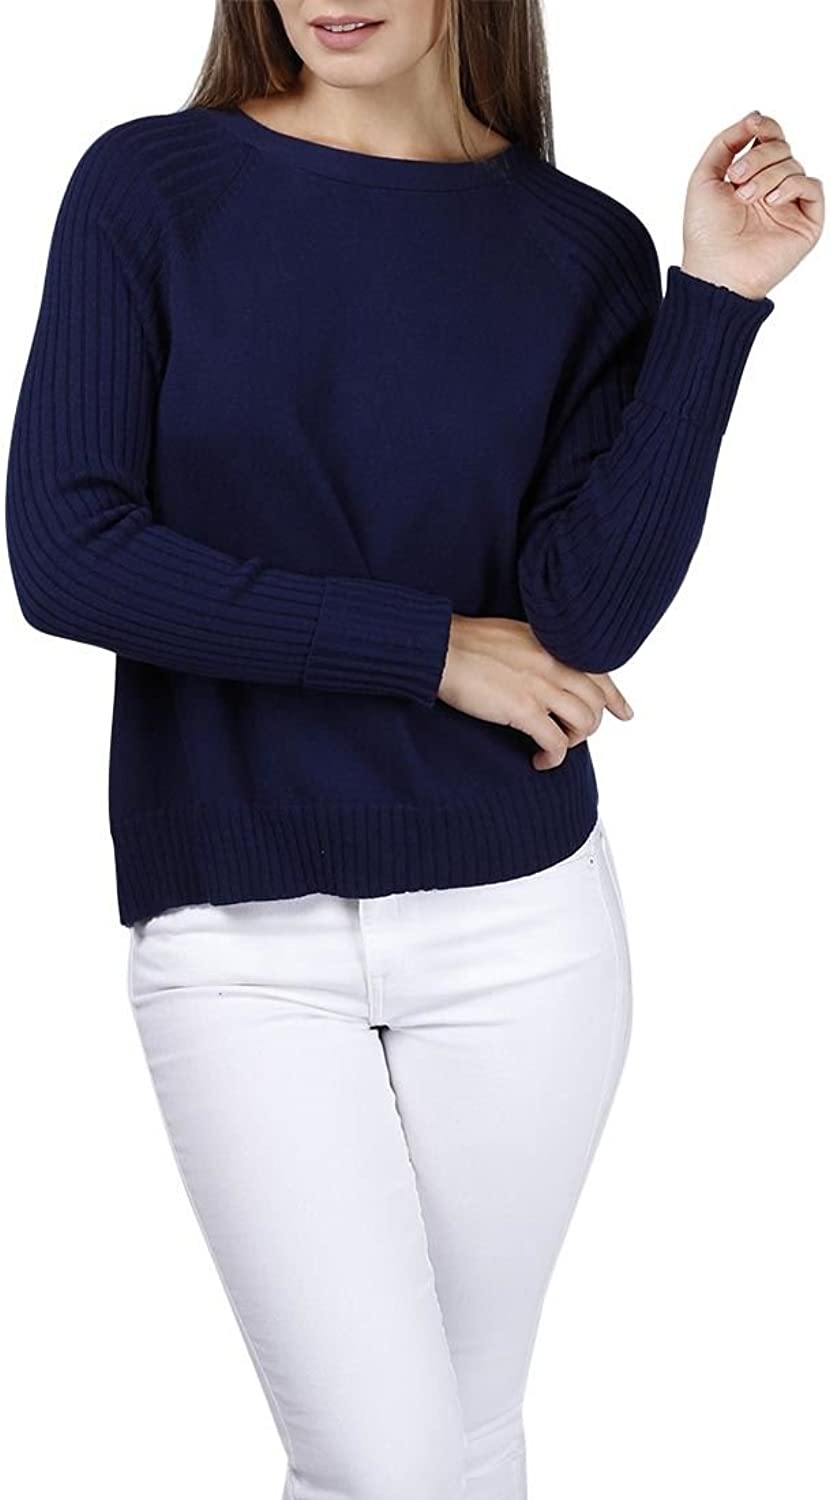 Central Park West  Mariposa lace back sweater  Navy